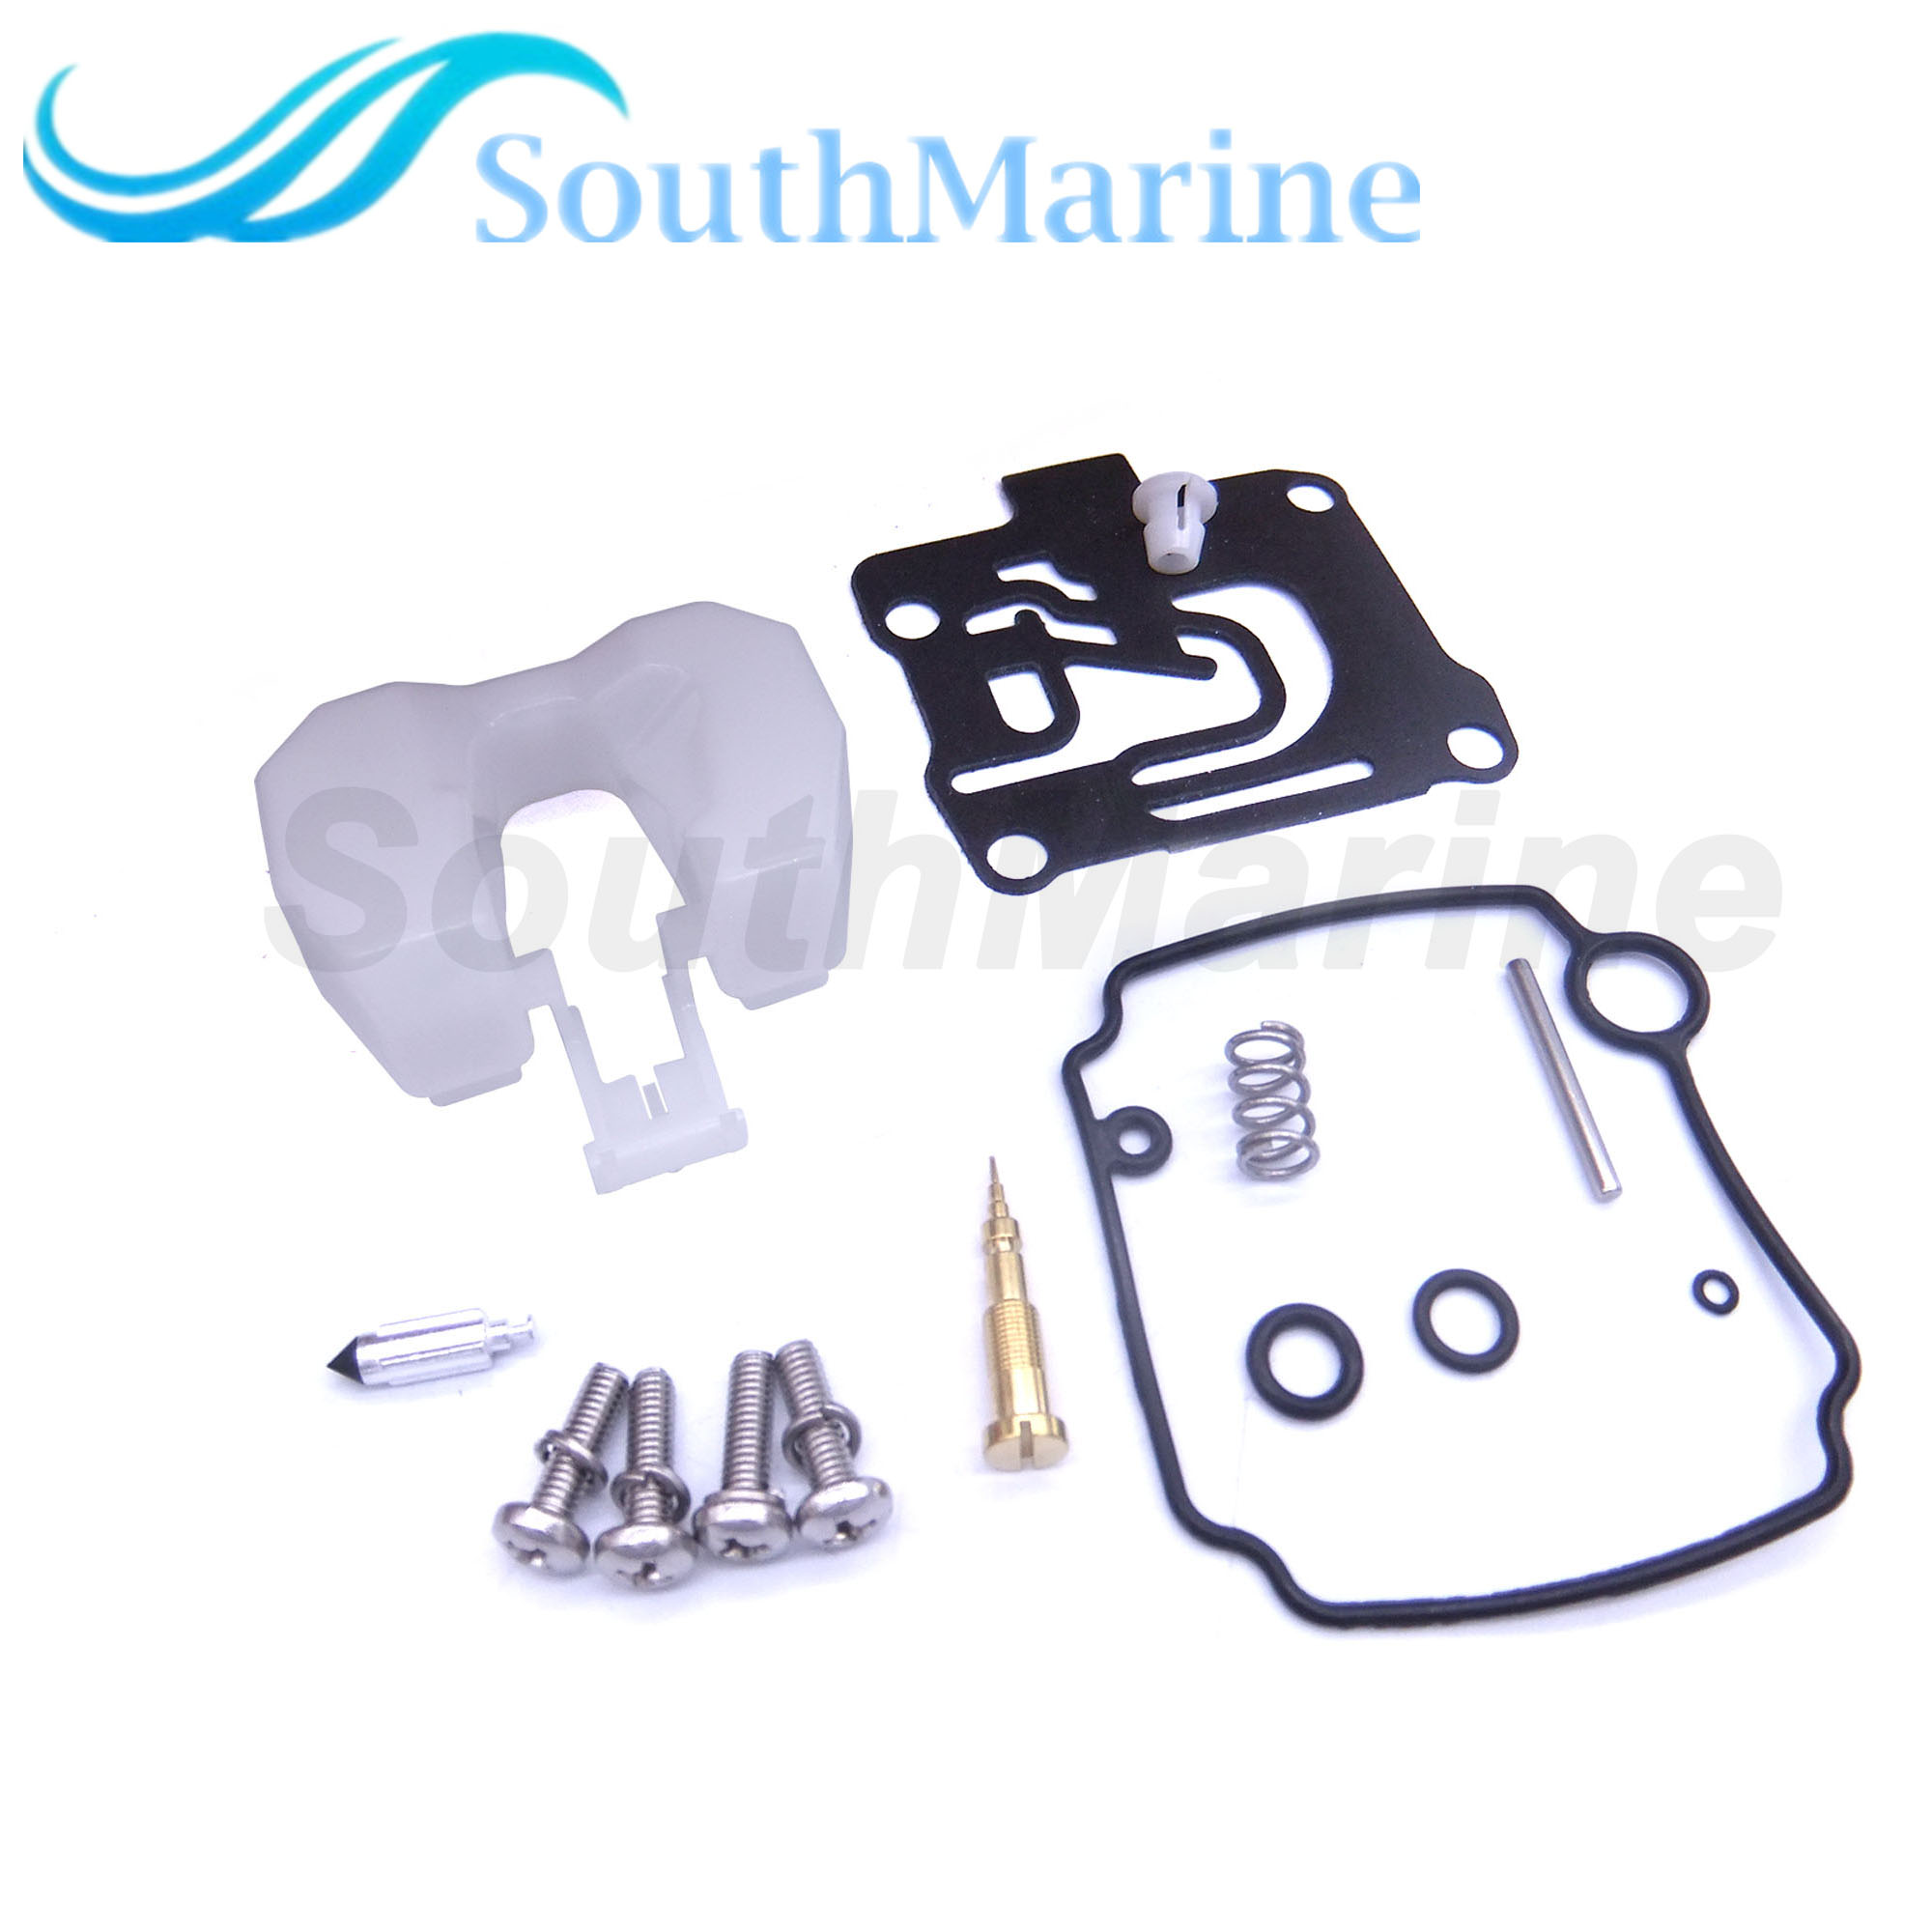 Boat Motor 62Y-W0093-10 62Y-W0093-11 Carburetor Repair Kit For Yamaha Outboard Engine 50HP T50 F50